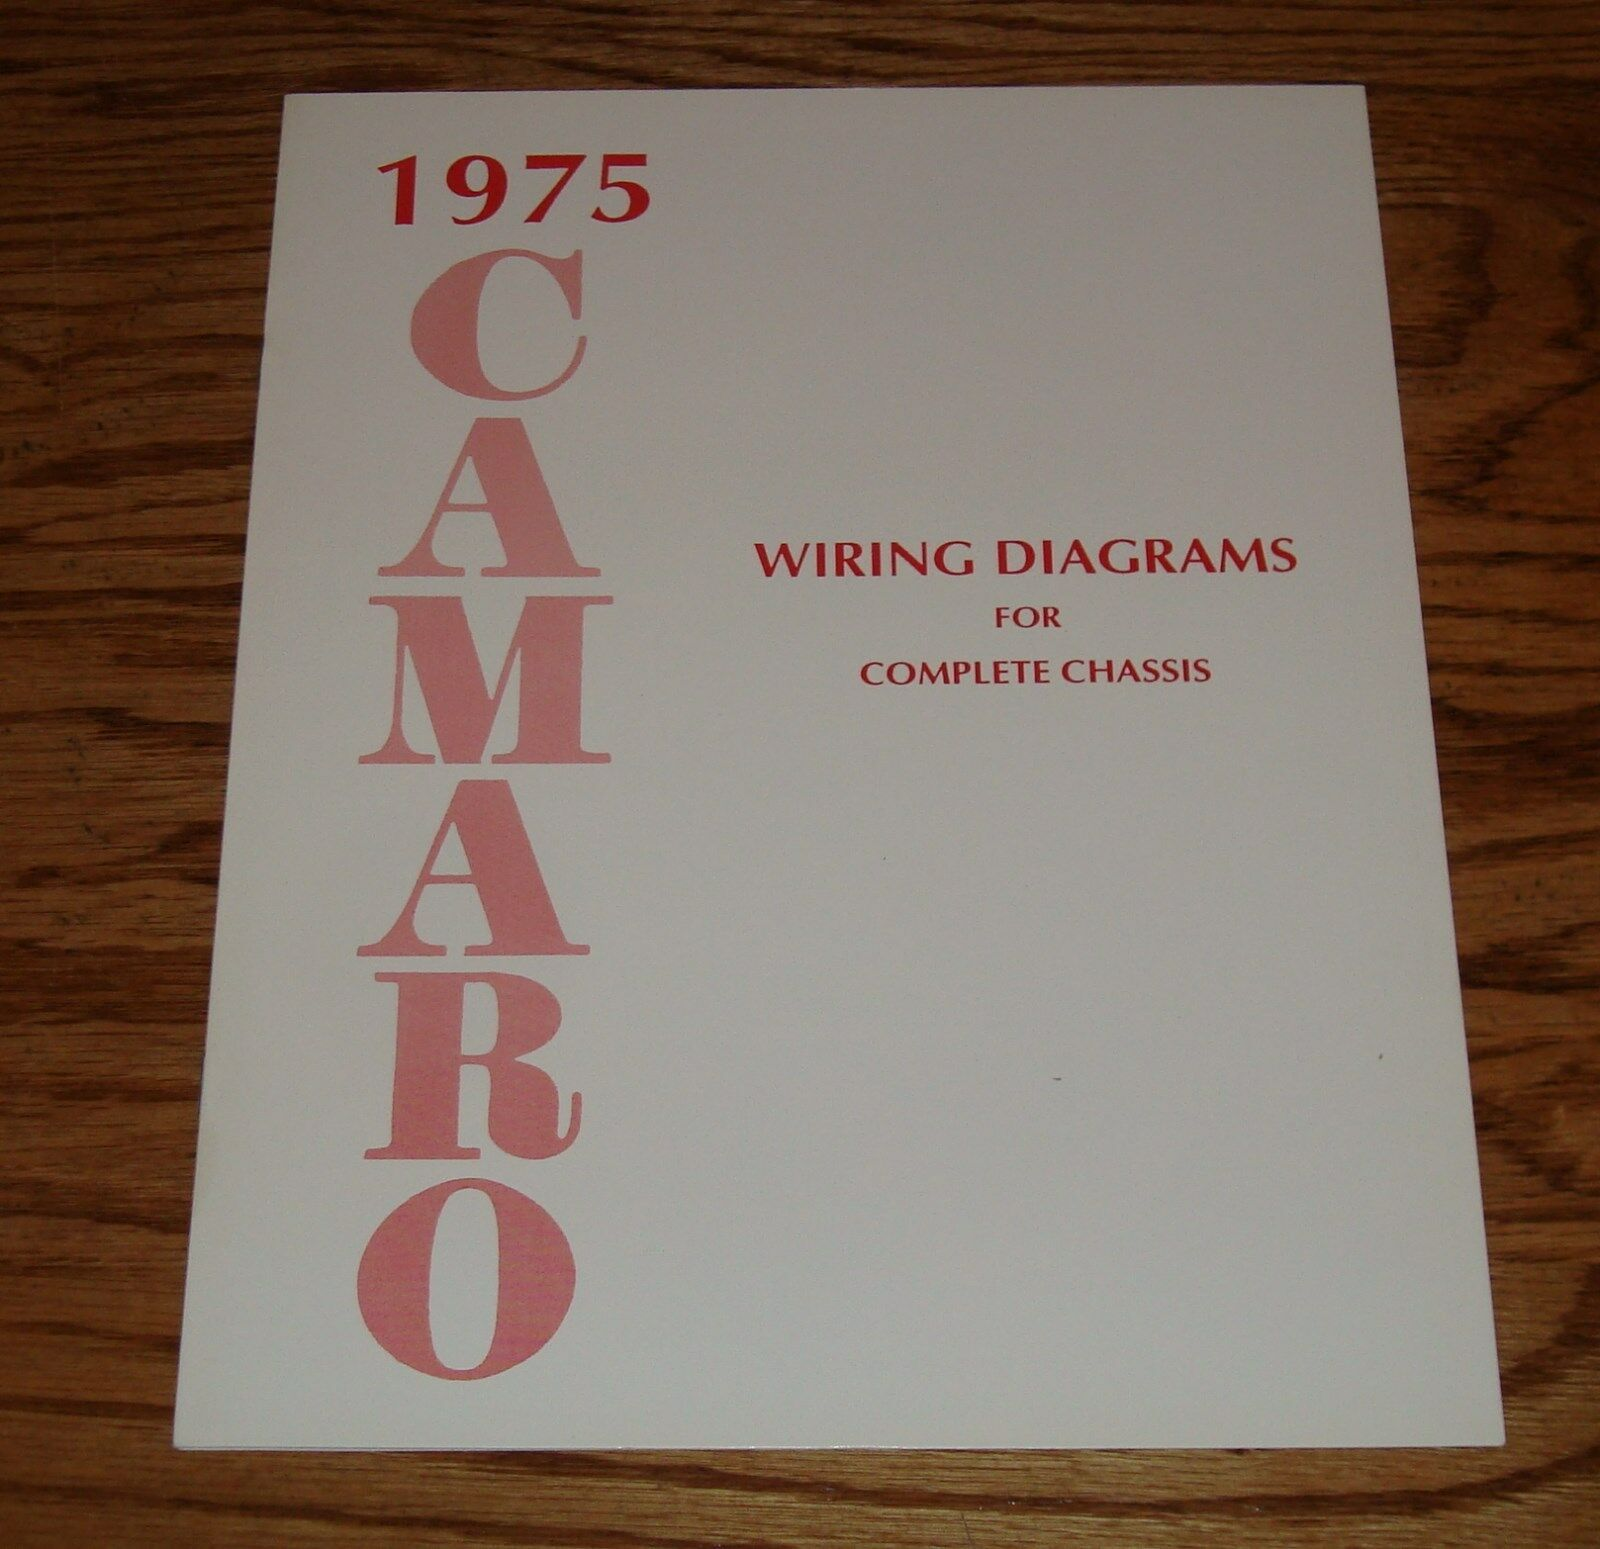 1975 Camaro Wiring Diagram Detailed Schematics Fuse Box Chevrolet Manual For Complete Chassis 75 1973 Charger